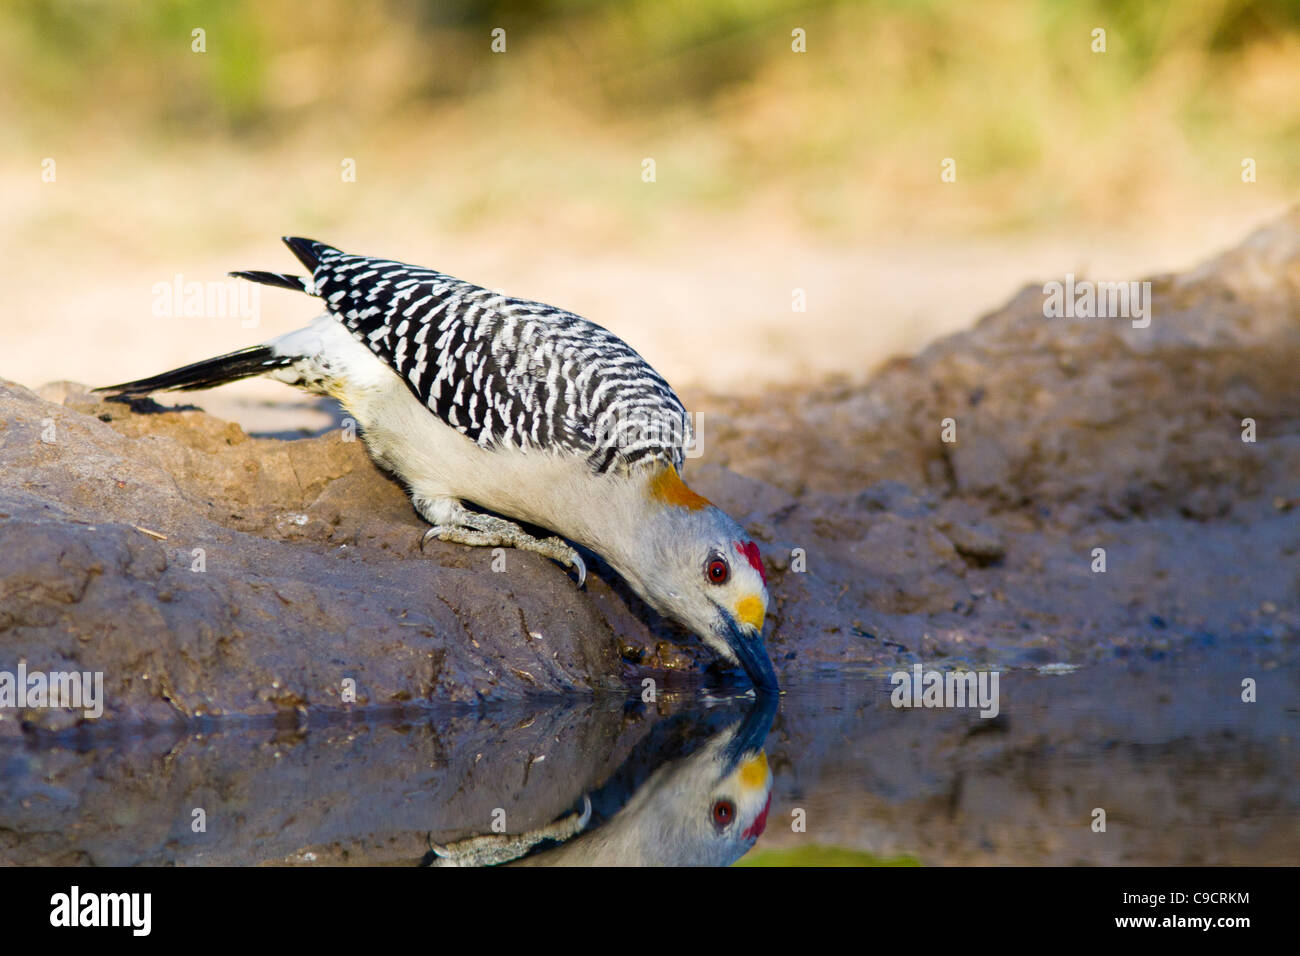 Golden-fronted Woodpecker, Melanerpes aurifrons, at a ranch in South Texas. Stock Photo